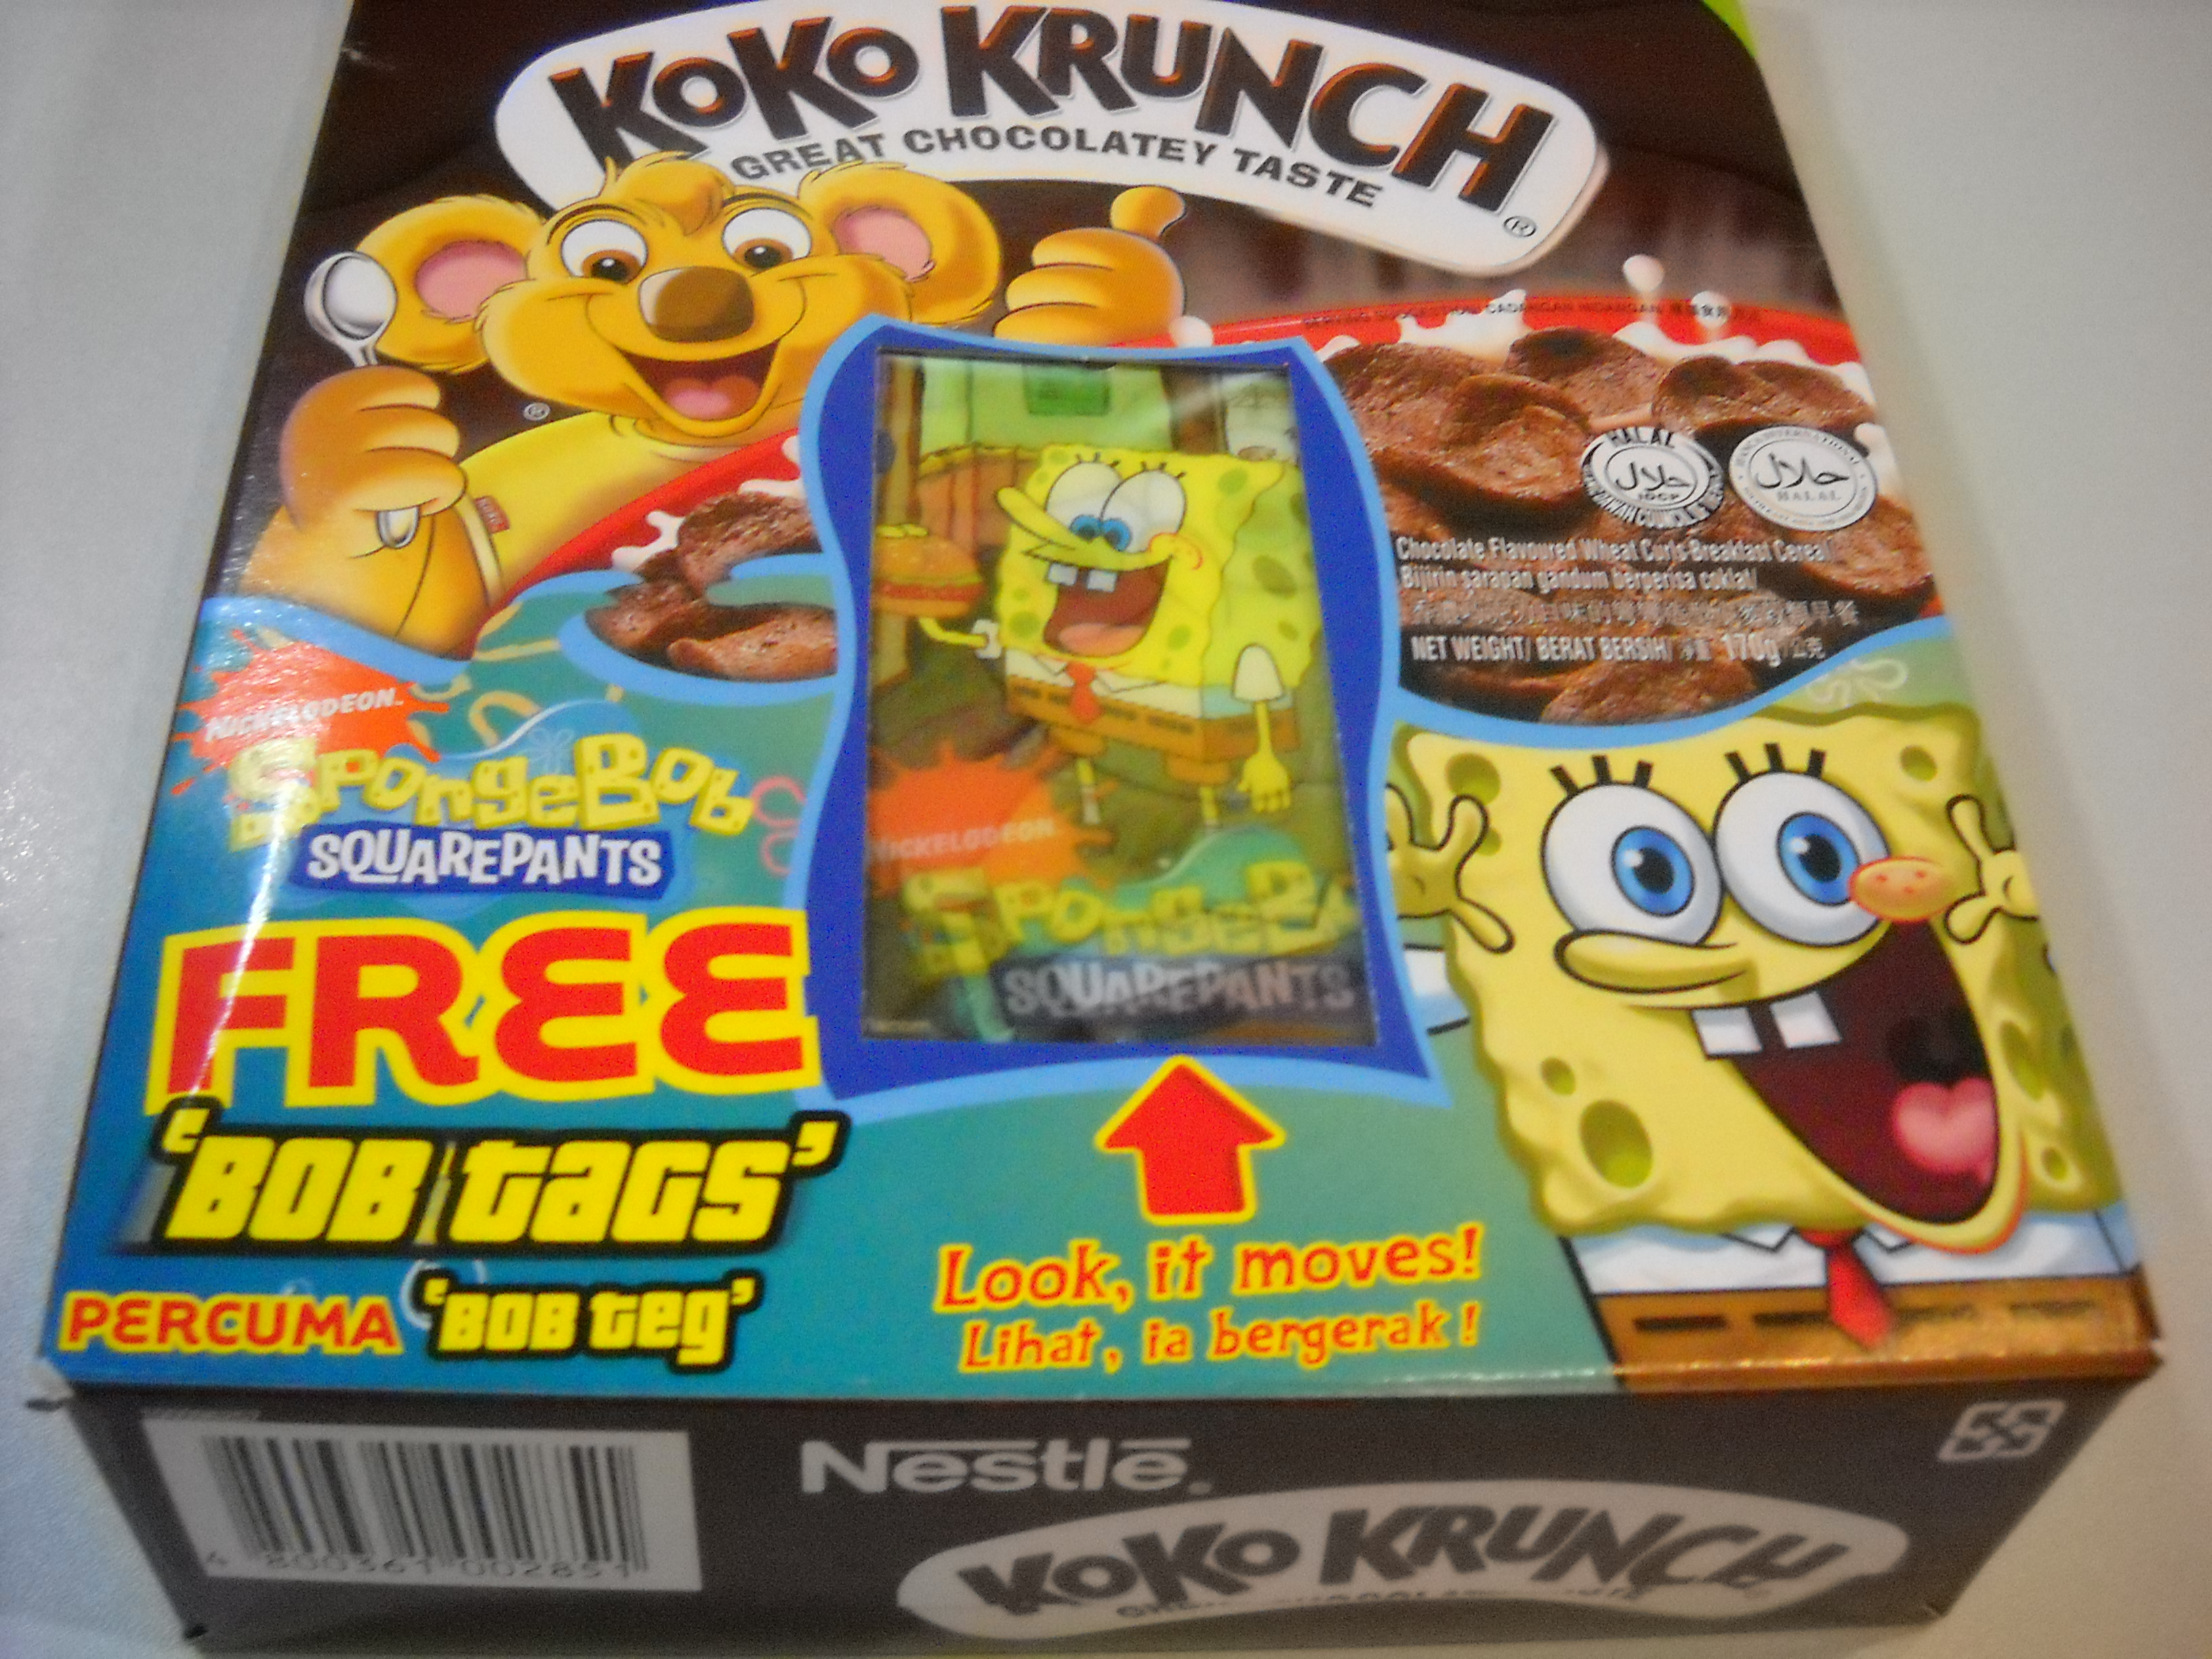 coco crunch box (front)